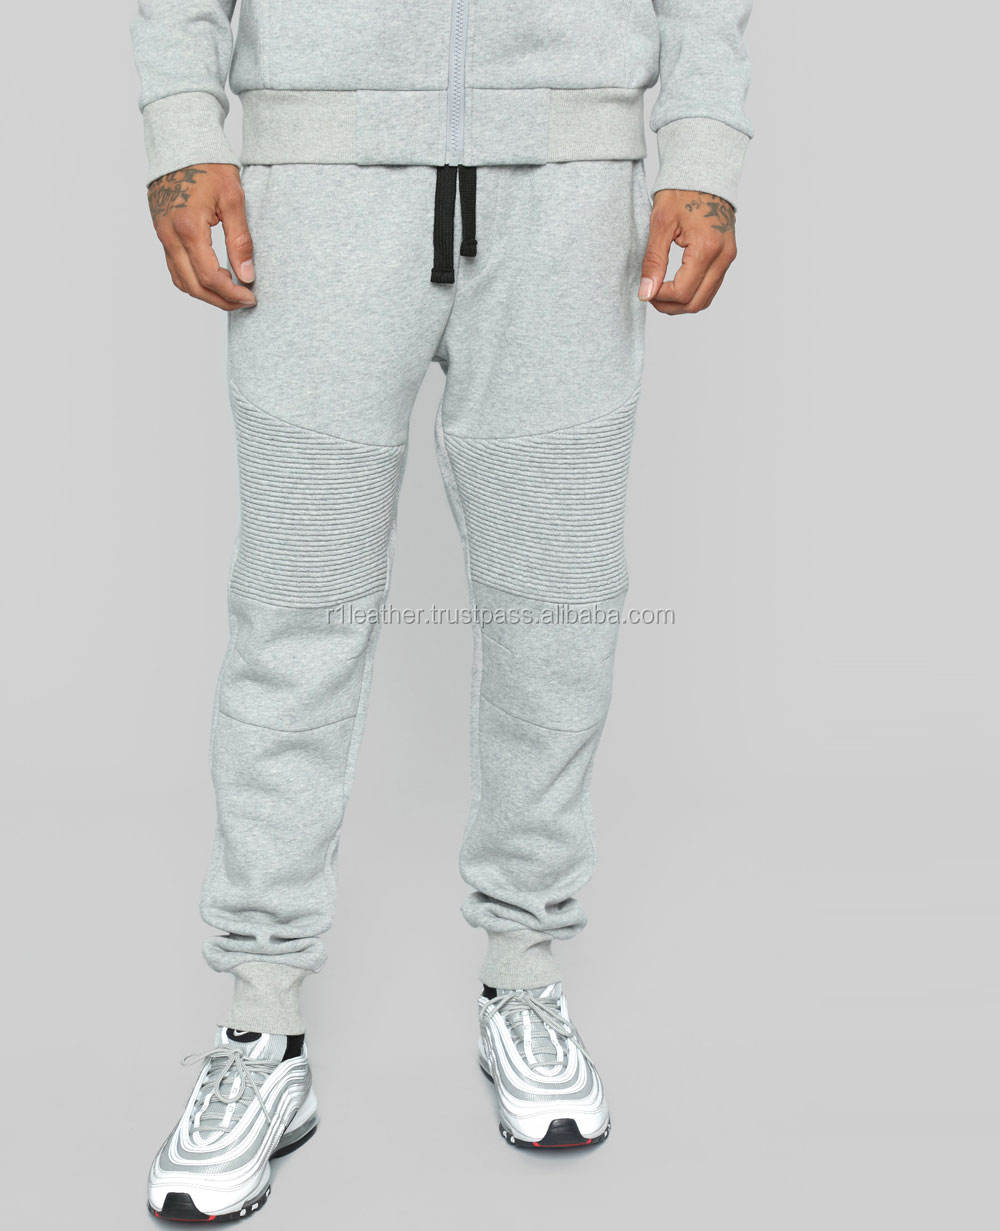 Tapered Fit Mens Jogger Broek Hot Koop Joggingbroeken Gym Fitness Wear Top Kwaliteit Trainingspak Bodems Lambrisering Joggers